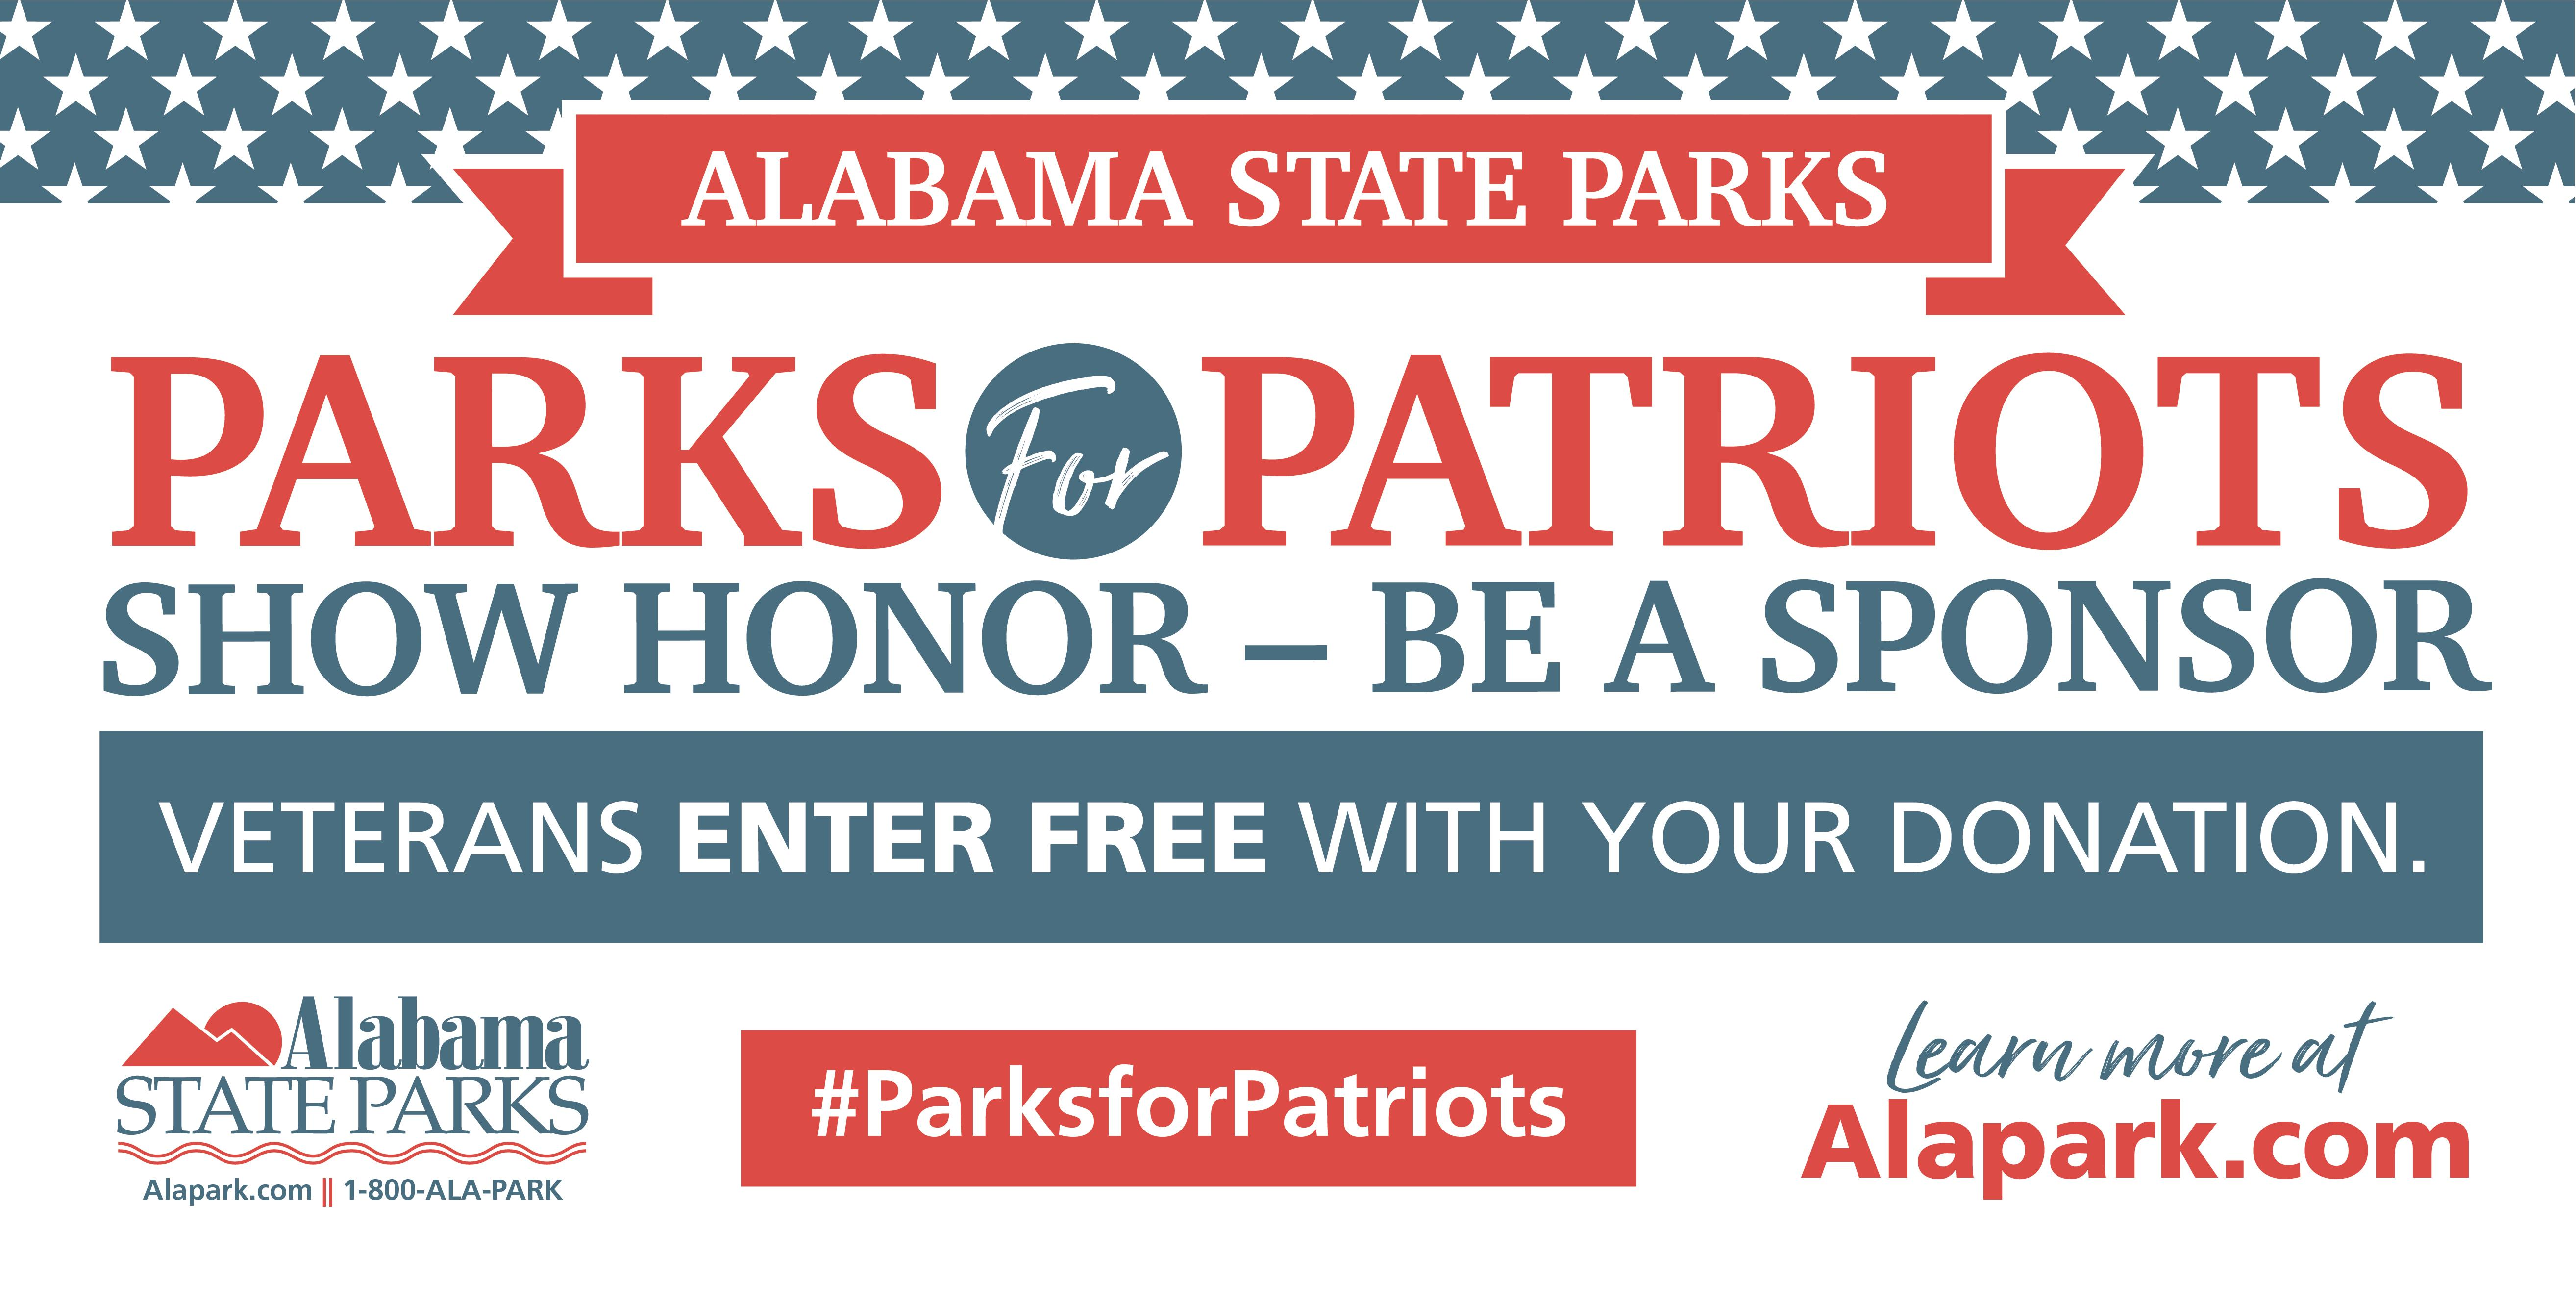 Parks for Patriots Veterans Program